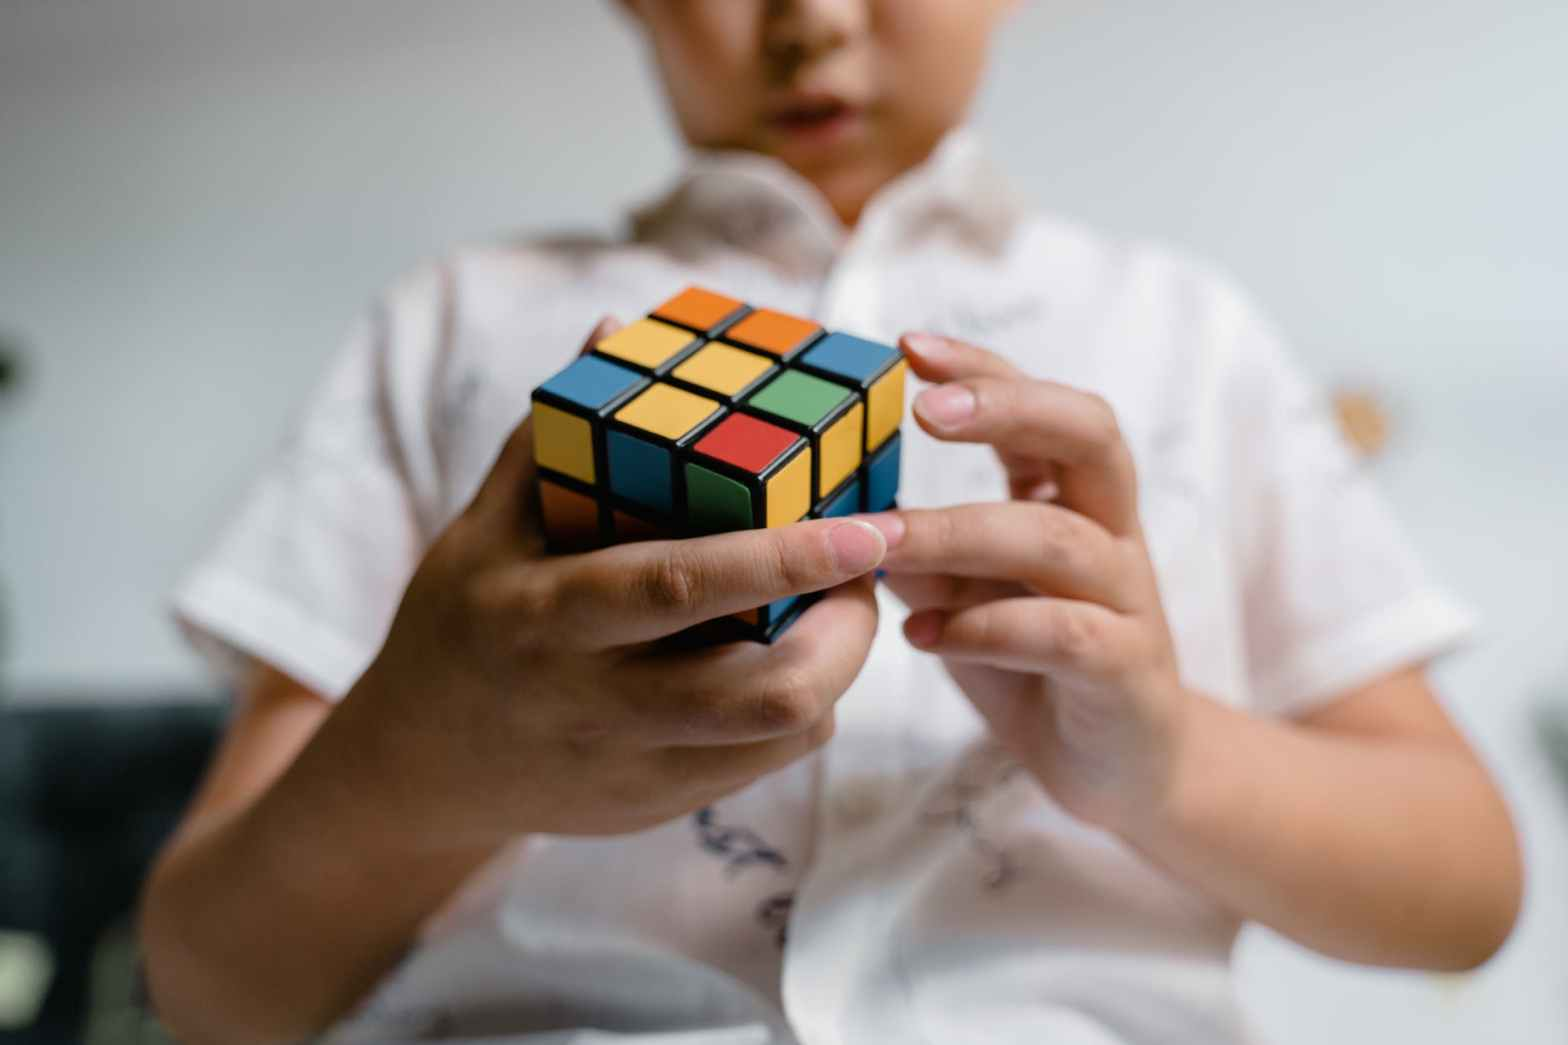 close up photo of a child solving a rubik s cube